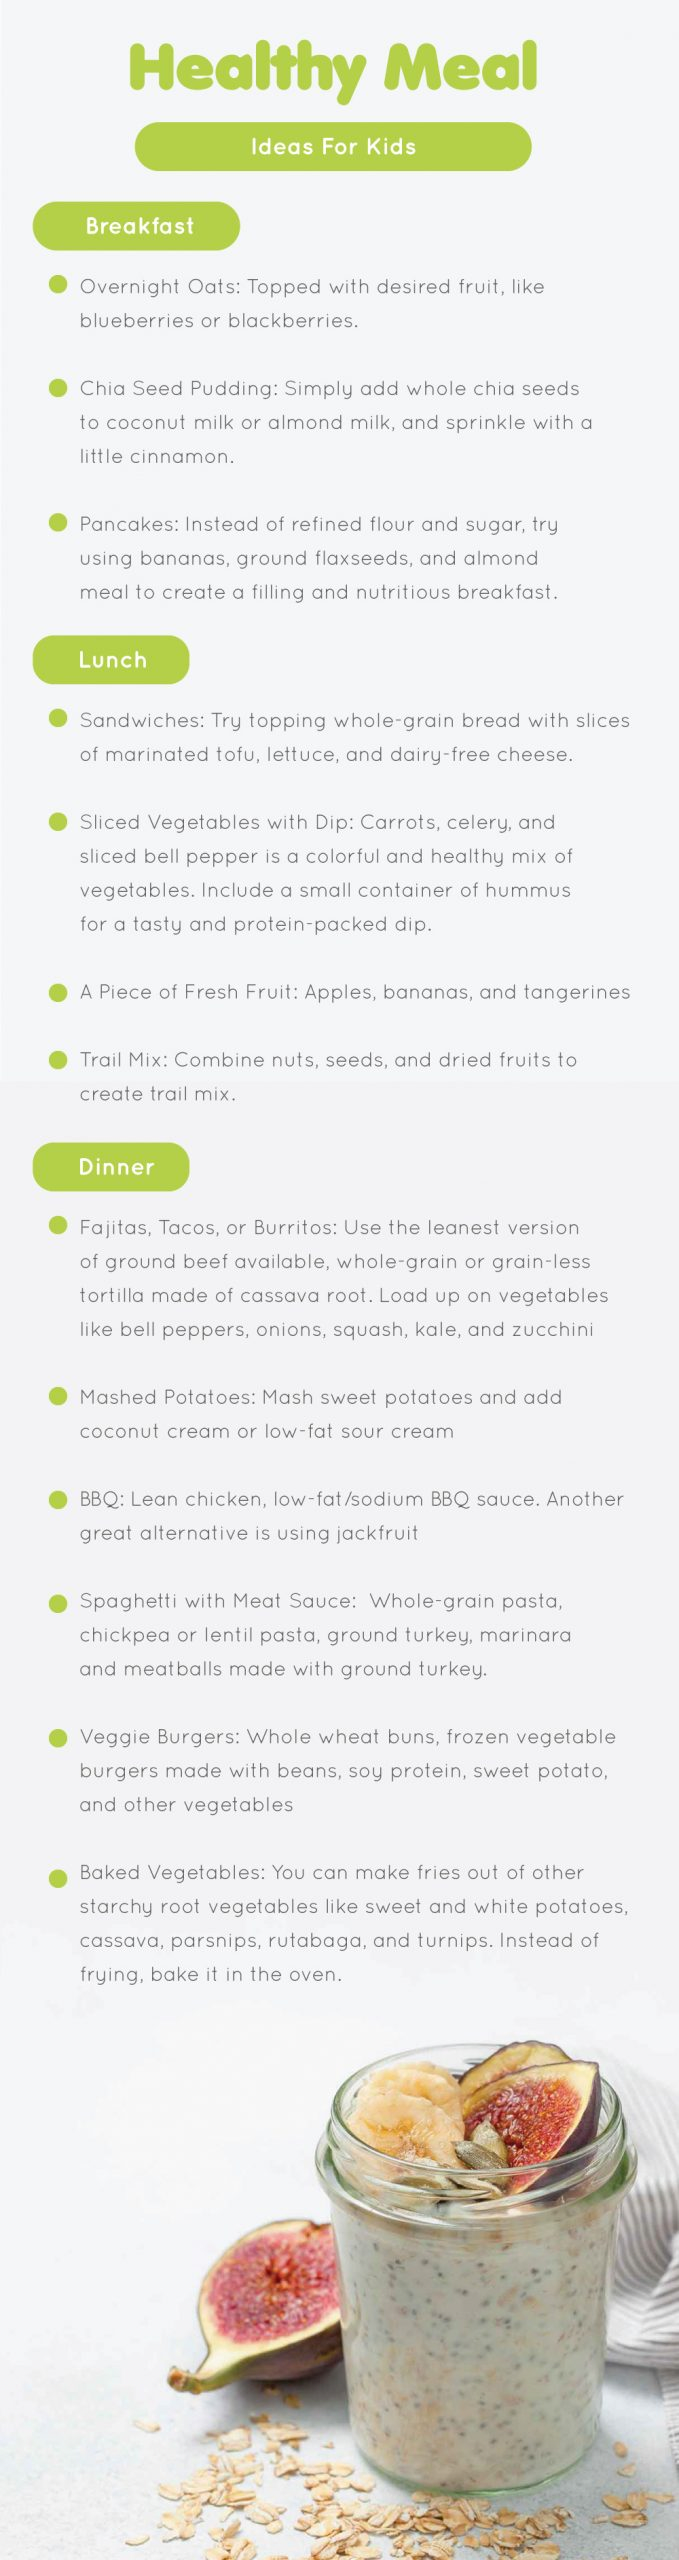 Healthy Meal Ideas For Kids